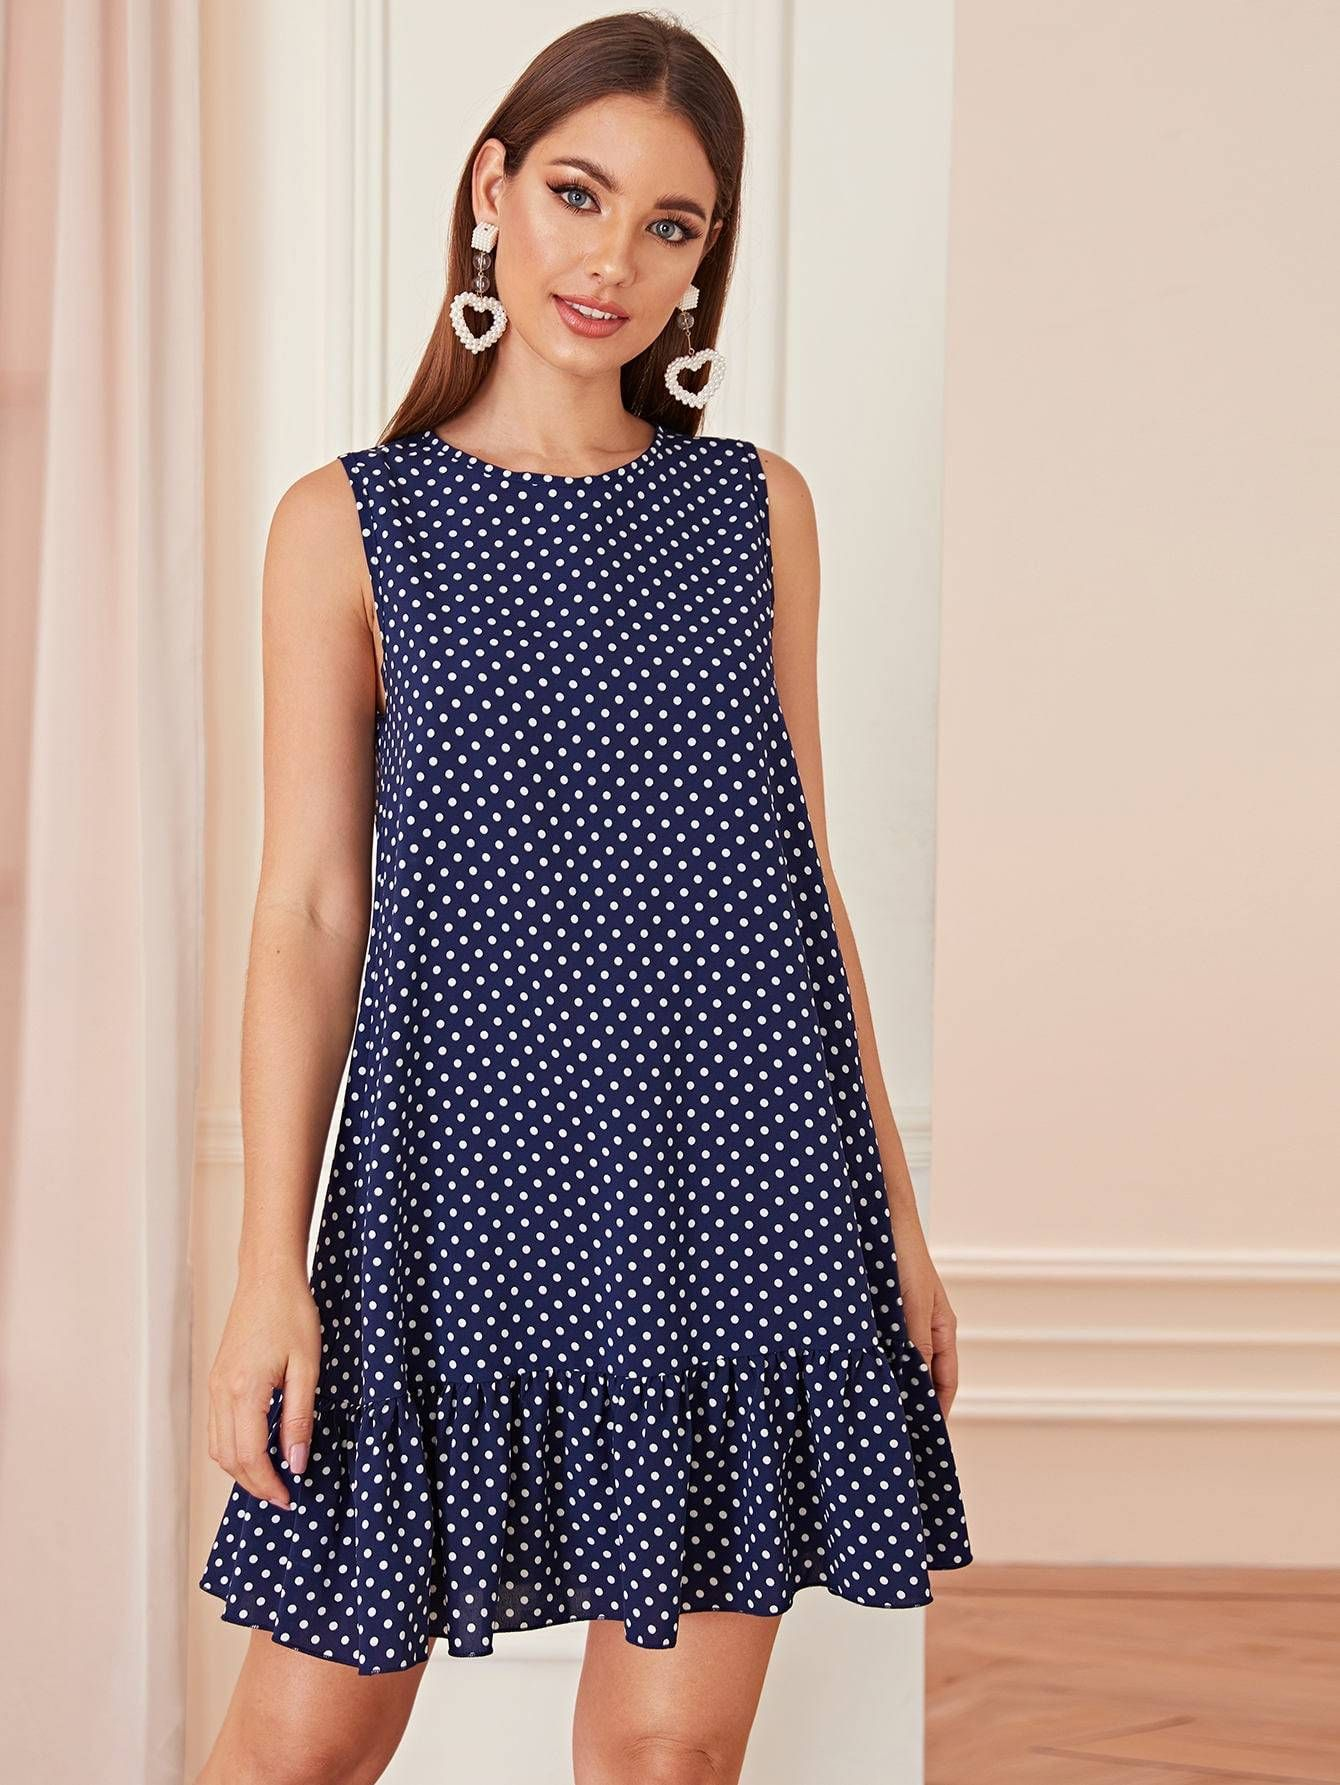 Ruffle Hem Polka Dot Dress